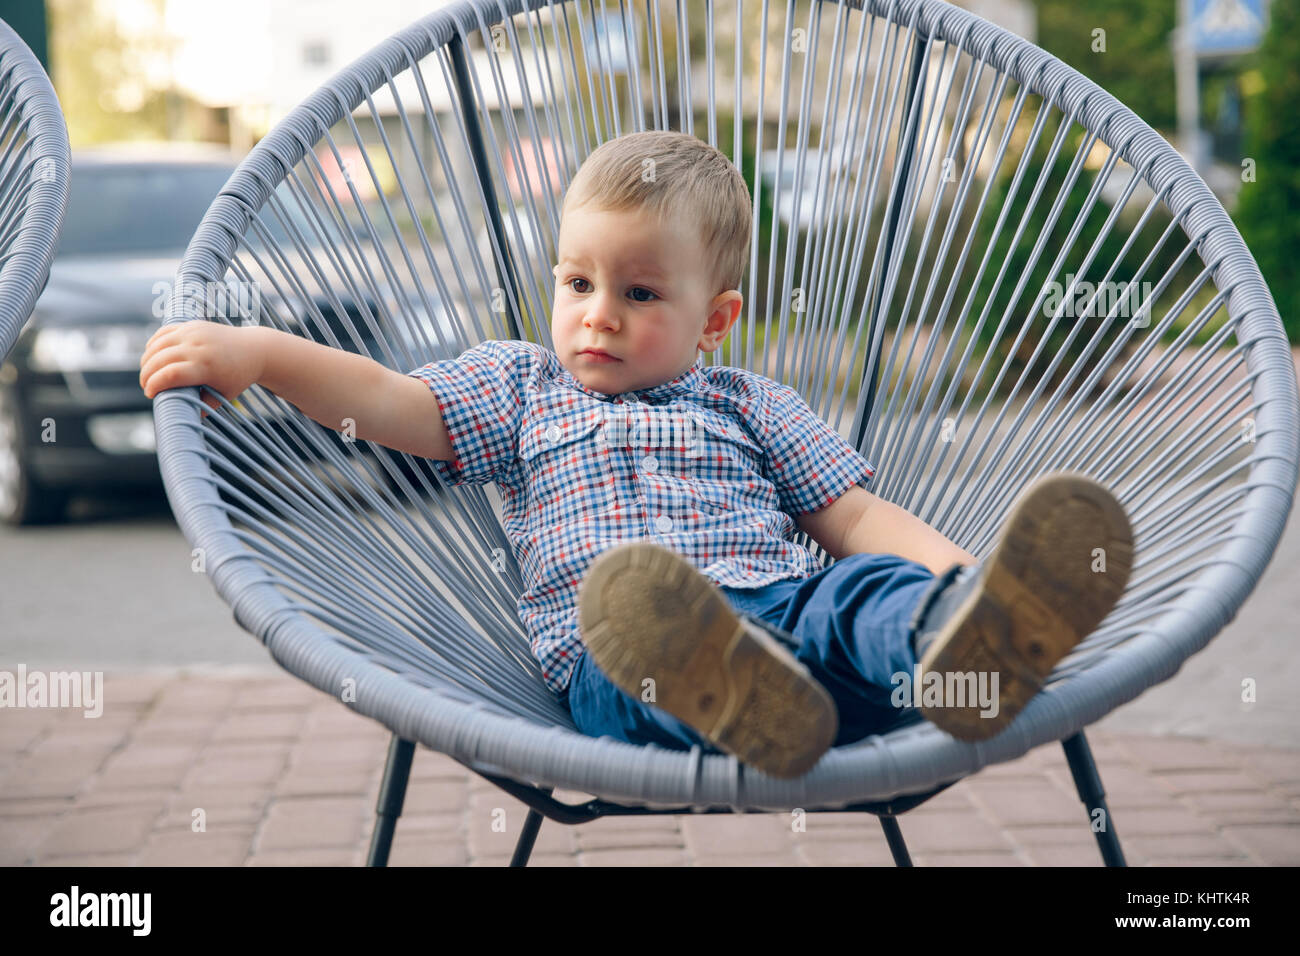 Ginger toddler dressed in jeans and blue t-shirt sitting on open air in wicker chair. - Stock Image